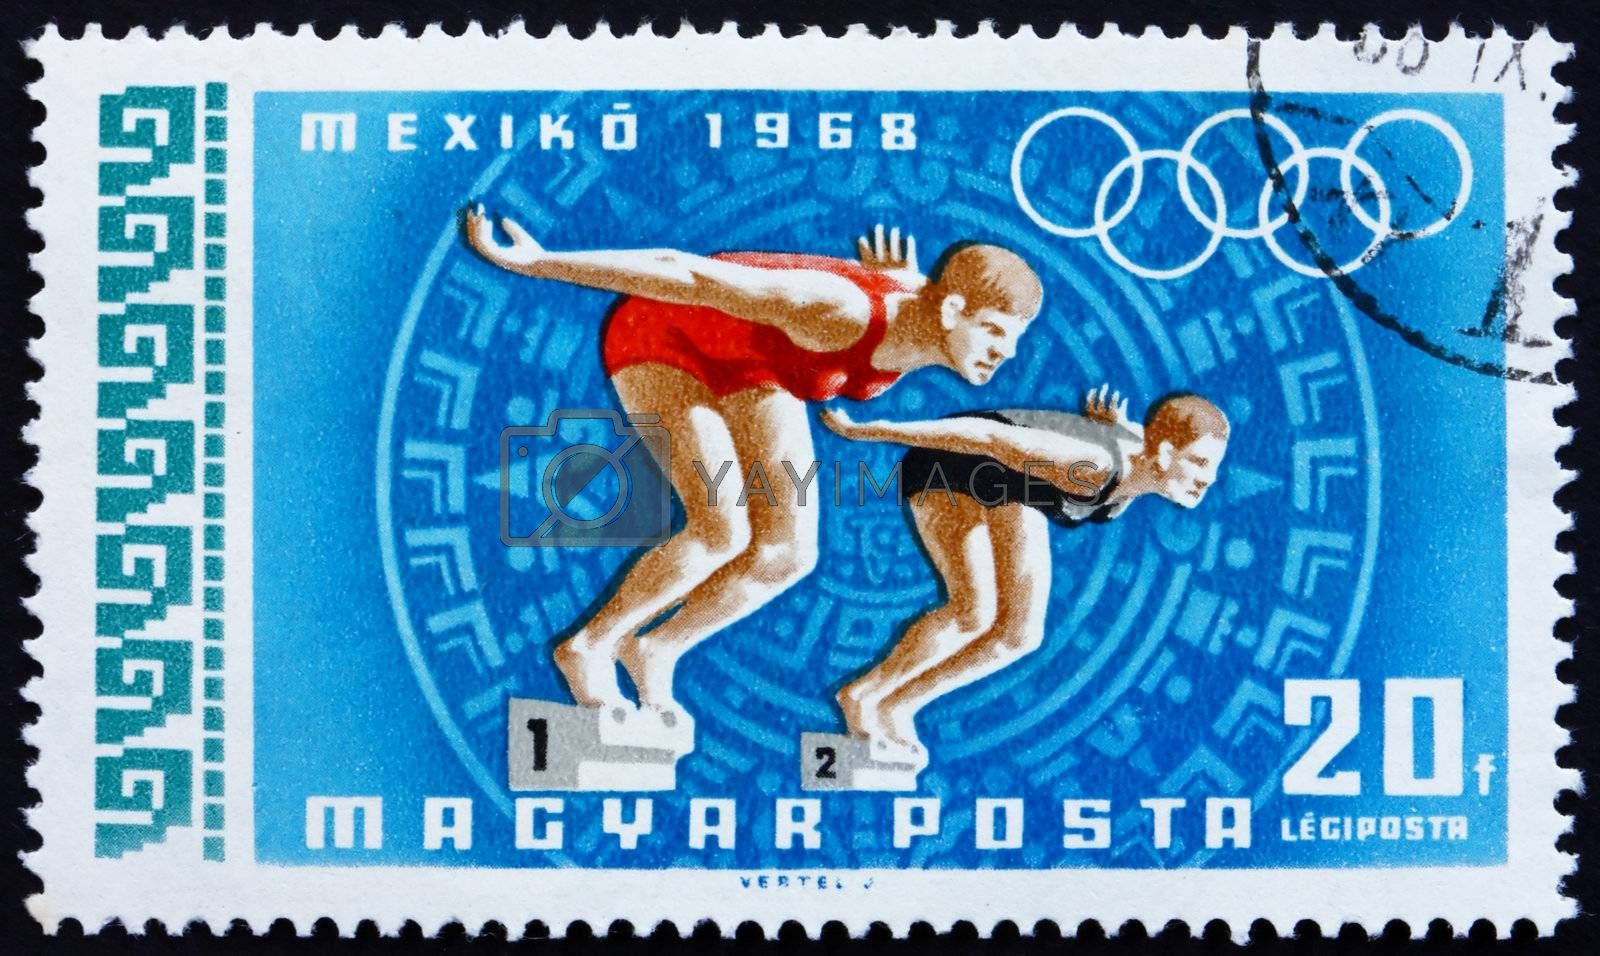 HUNGARY - CIRCA 1968: a stamp printed in the Hungary shows Women Swimmers, Summer Olympic sports, Mexico 68, circa 1968